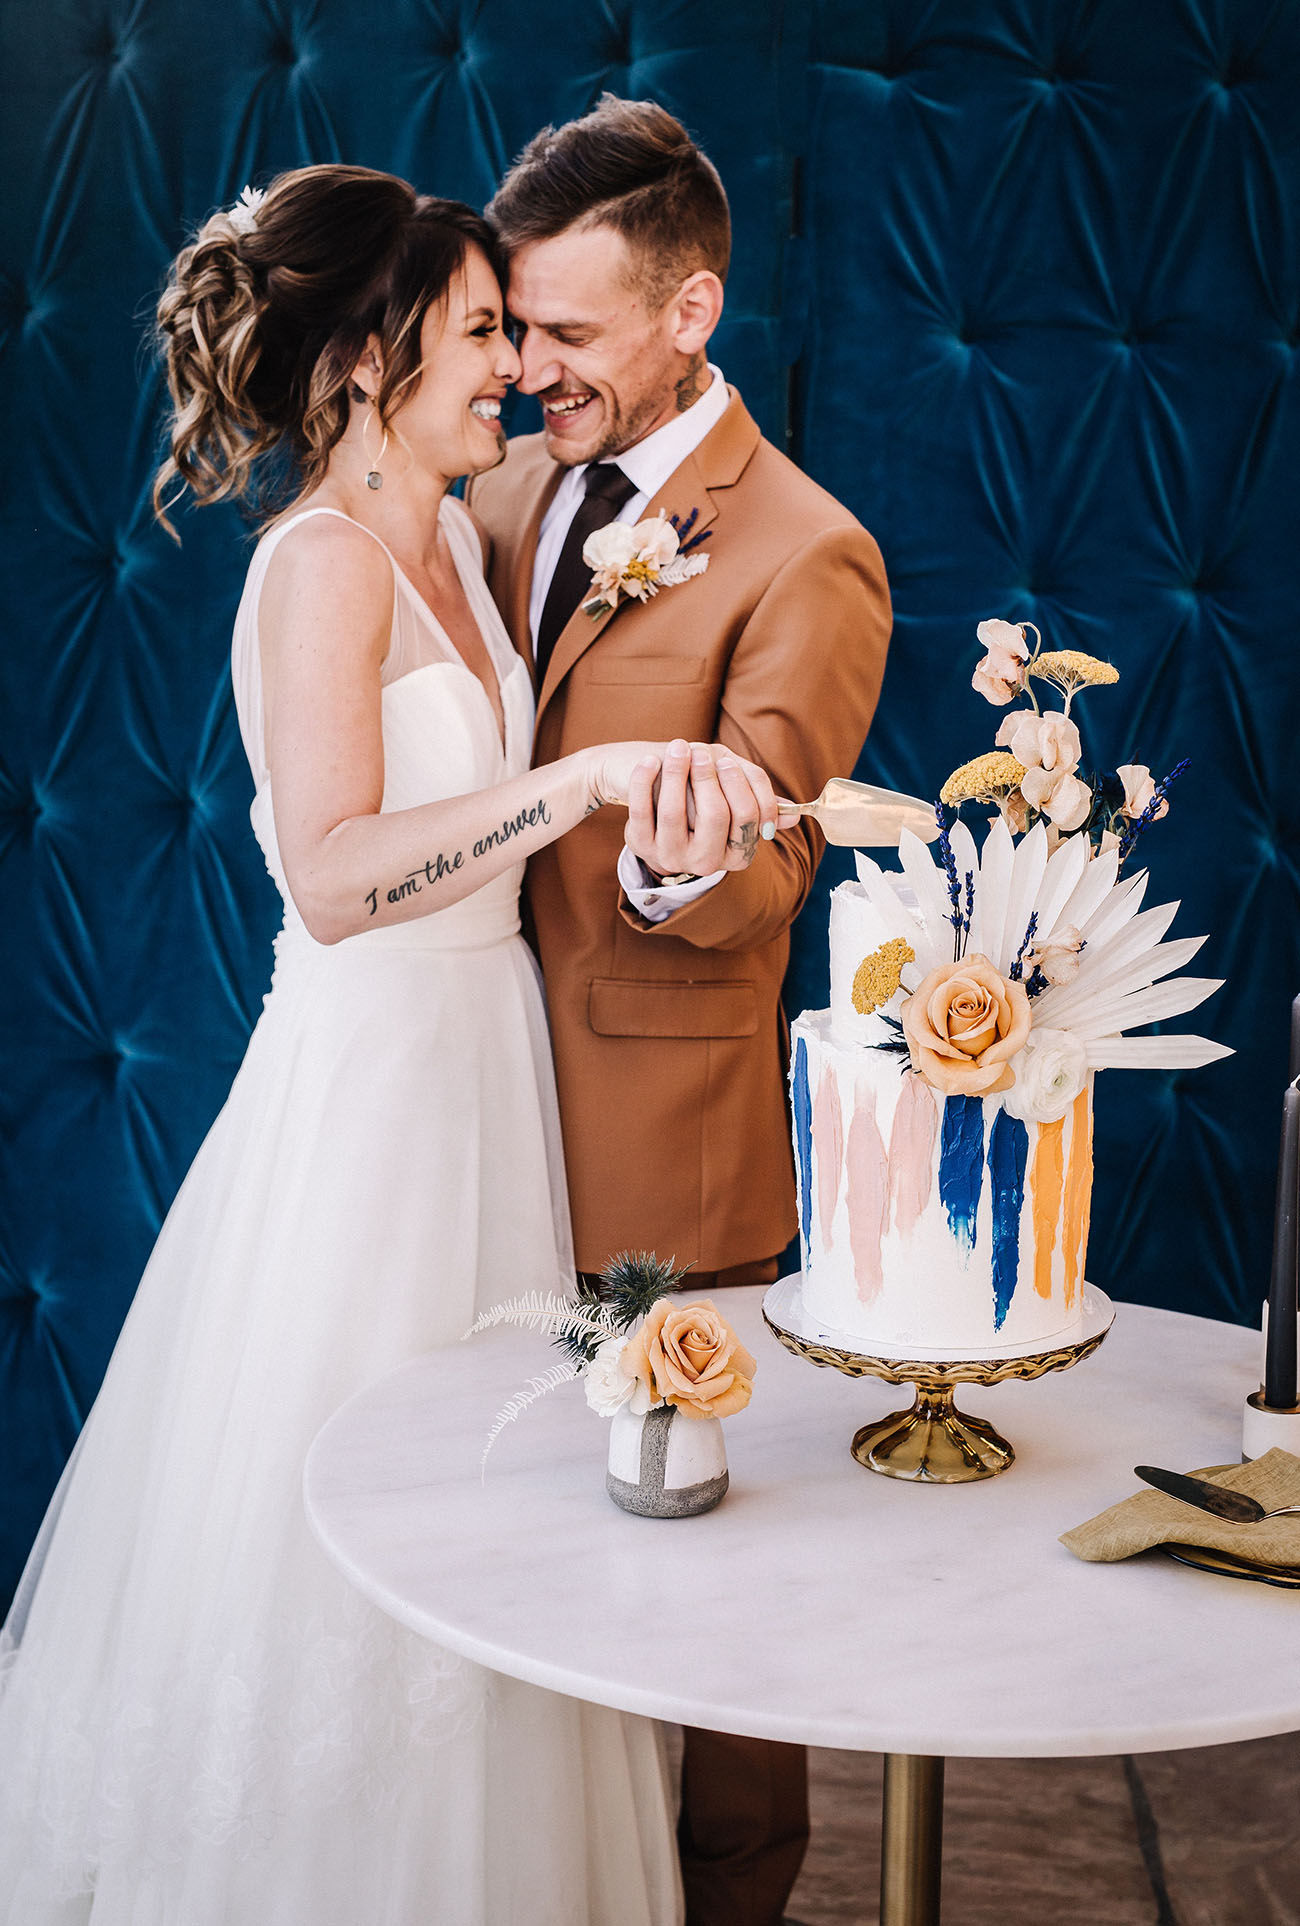 cut the cake songs for your wedding with couple and cake